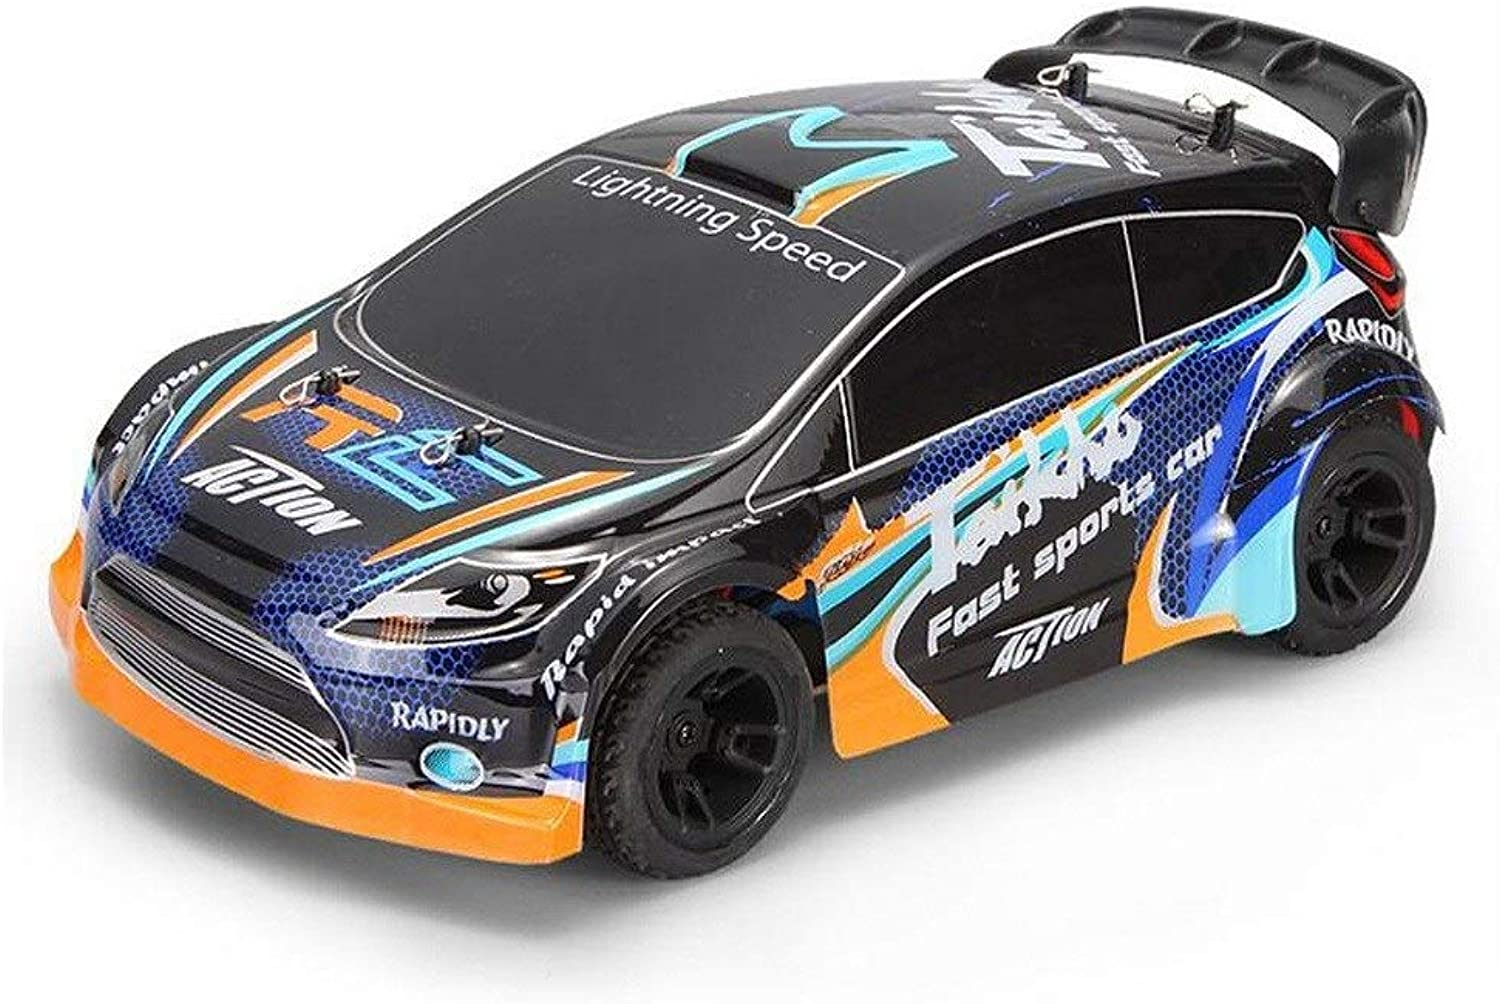 Mpotow 35km   h High-Speed 1 24 Fernbedienung Rennwagen Metall Chassis Allradantrieb Elektro Drift Pull Auto 2,4 GHzElectric Brushed 4WD RC Rally Car RTR Kinder Geschenk